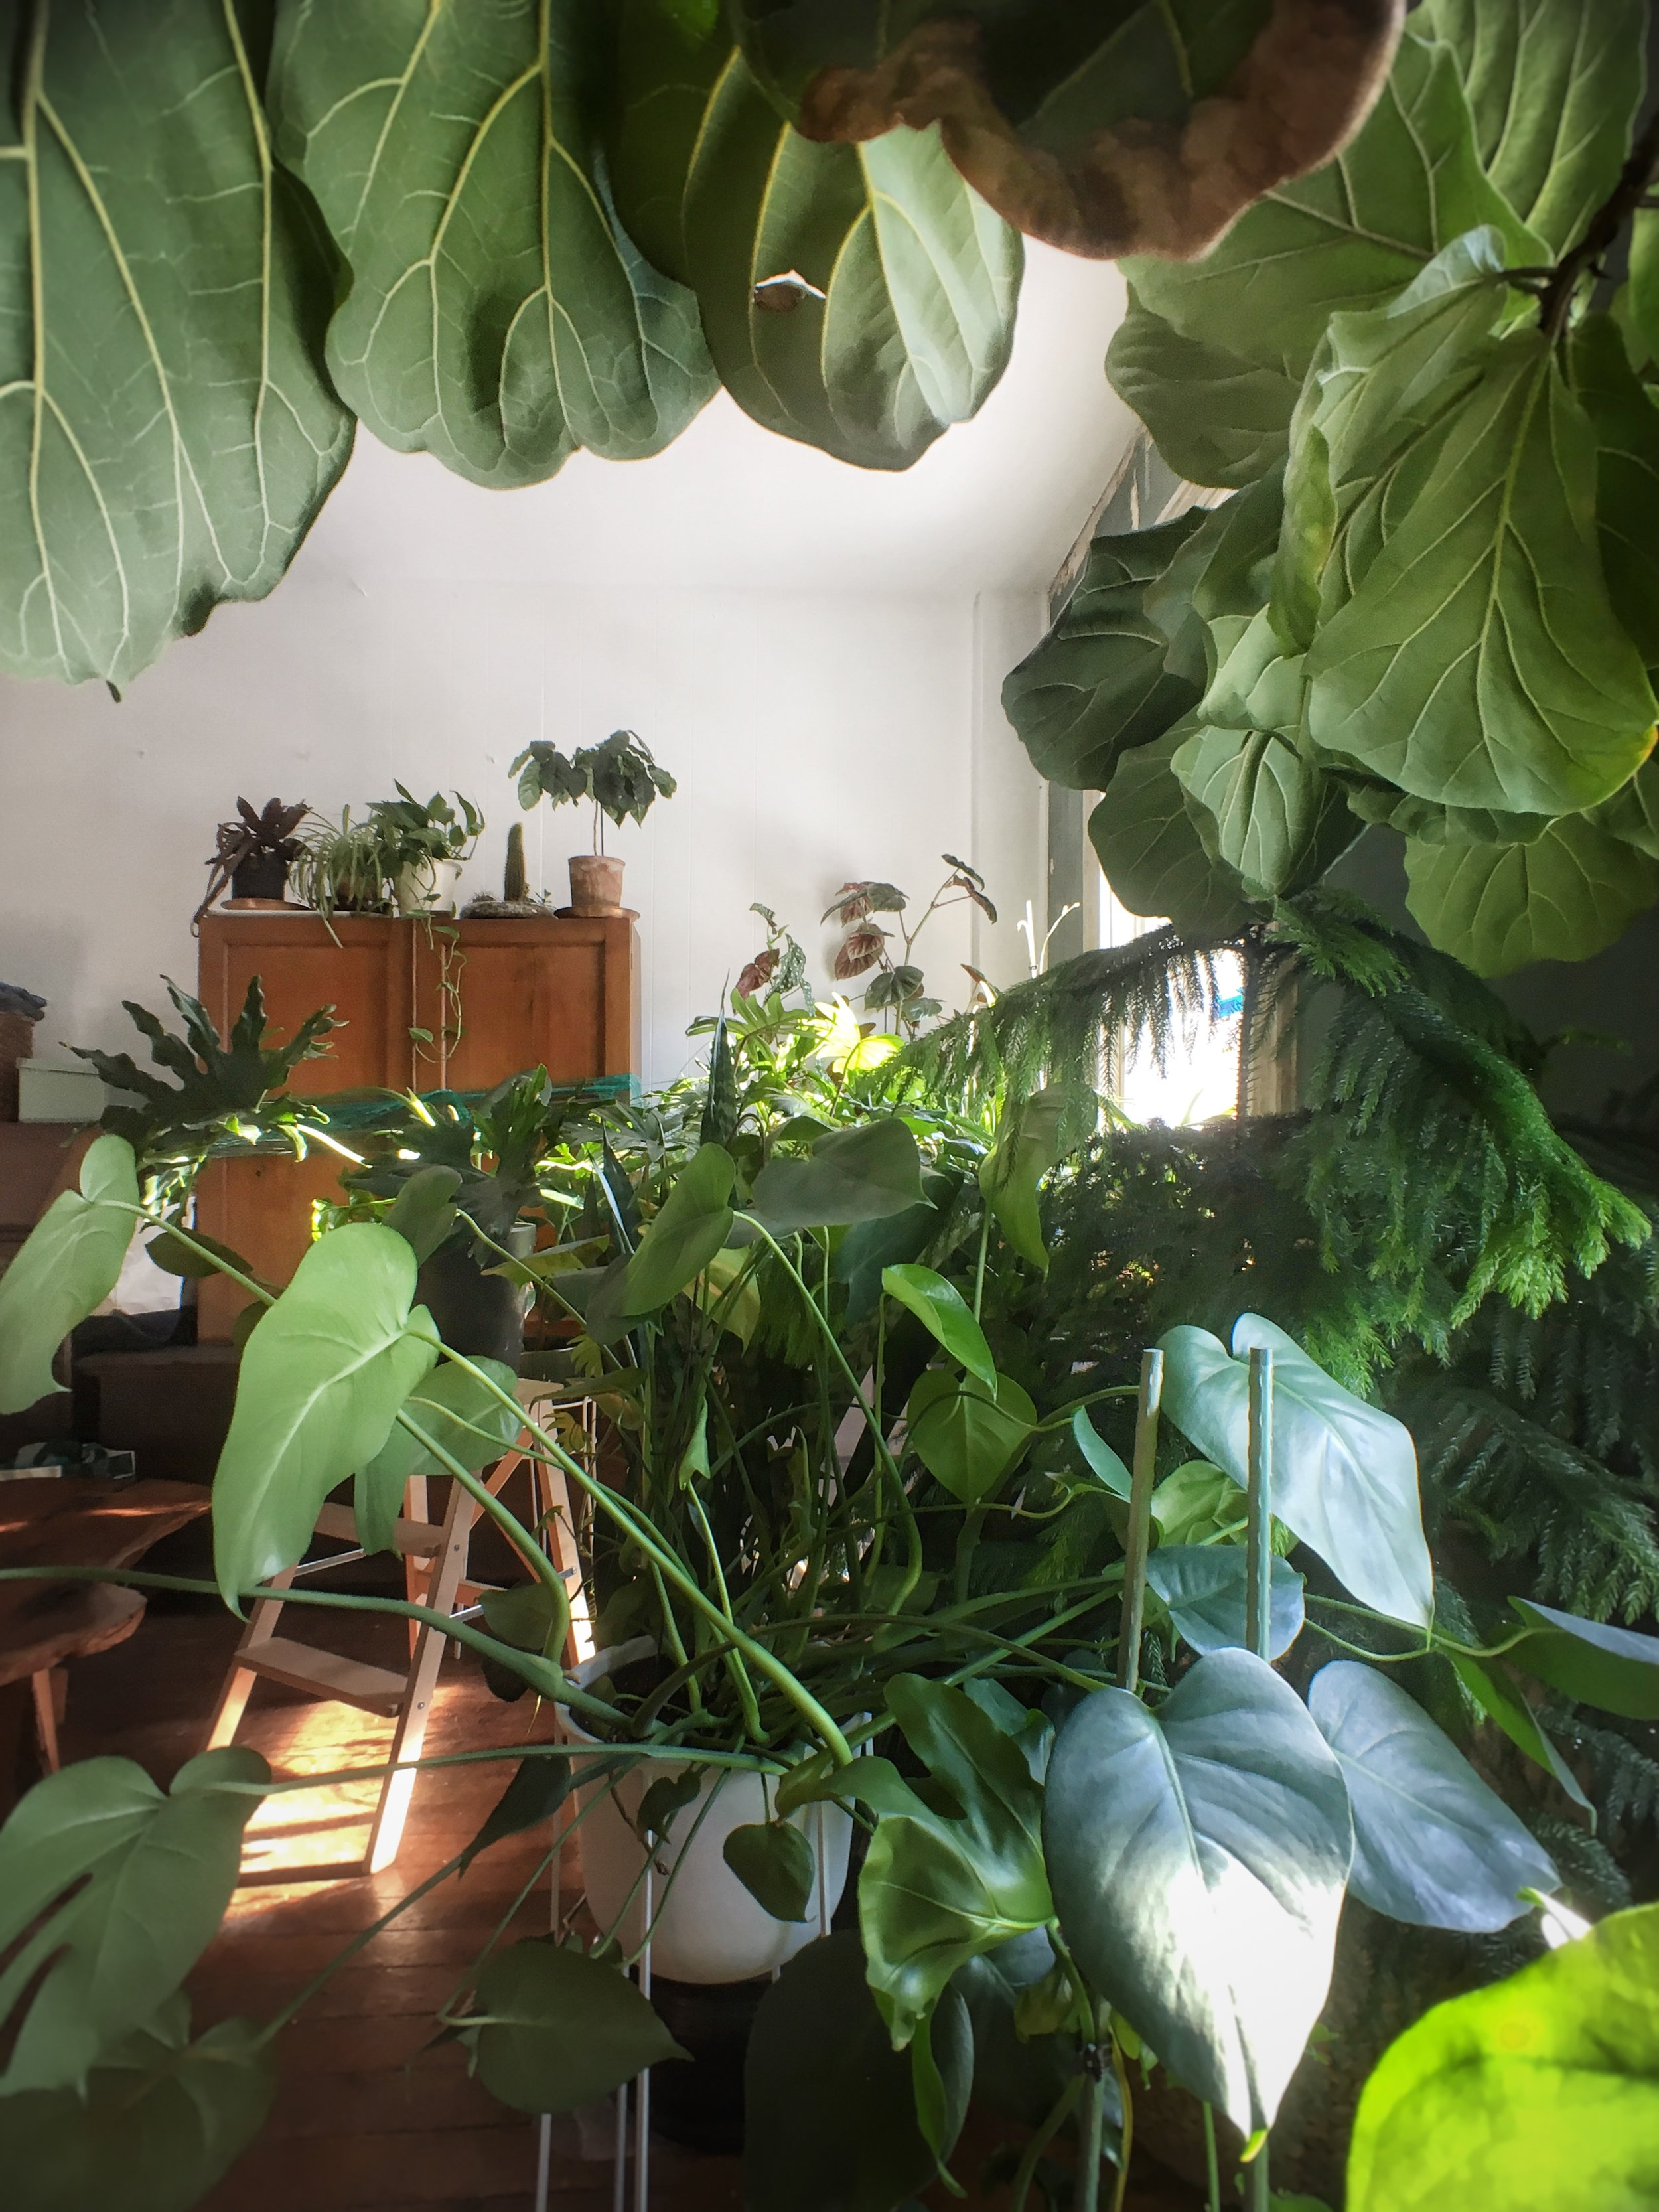 Our jungle-like situation will soon improve when we can spread out in the 2nd and 3rd floors.